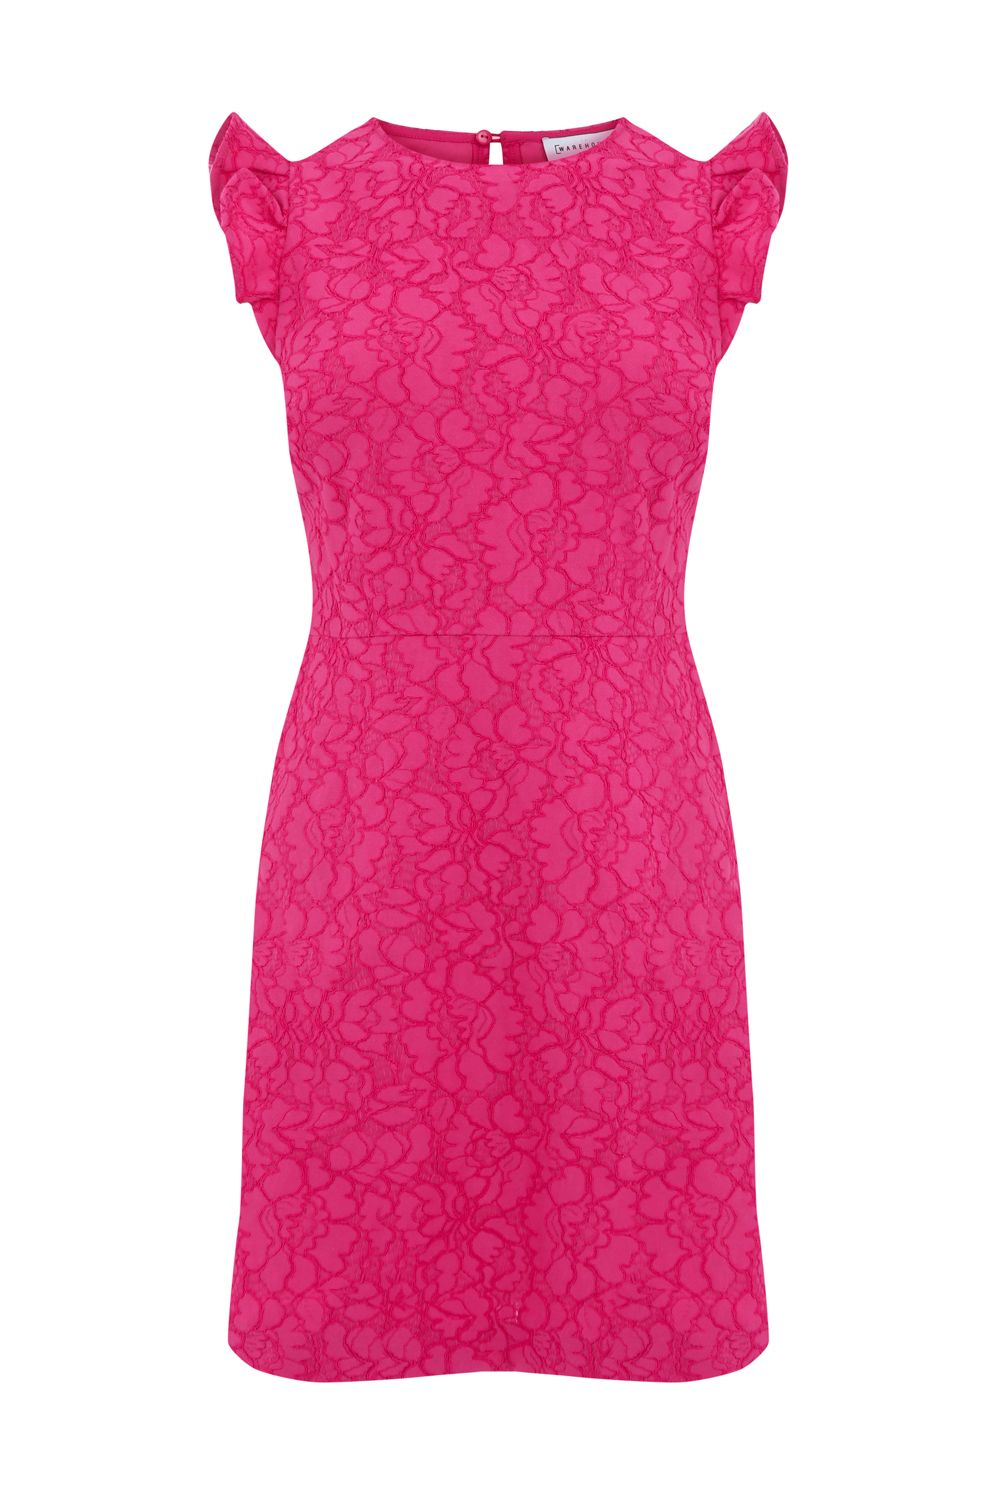 Warehouse Frill Sleeve Bonded Lace Dress, Pink